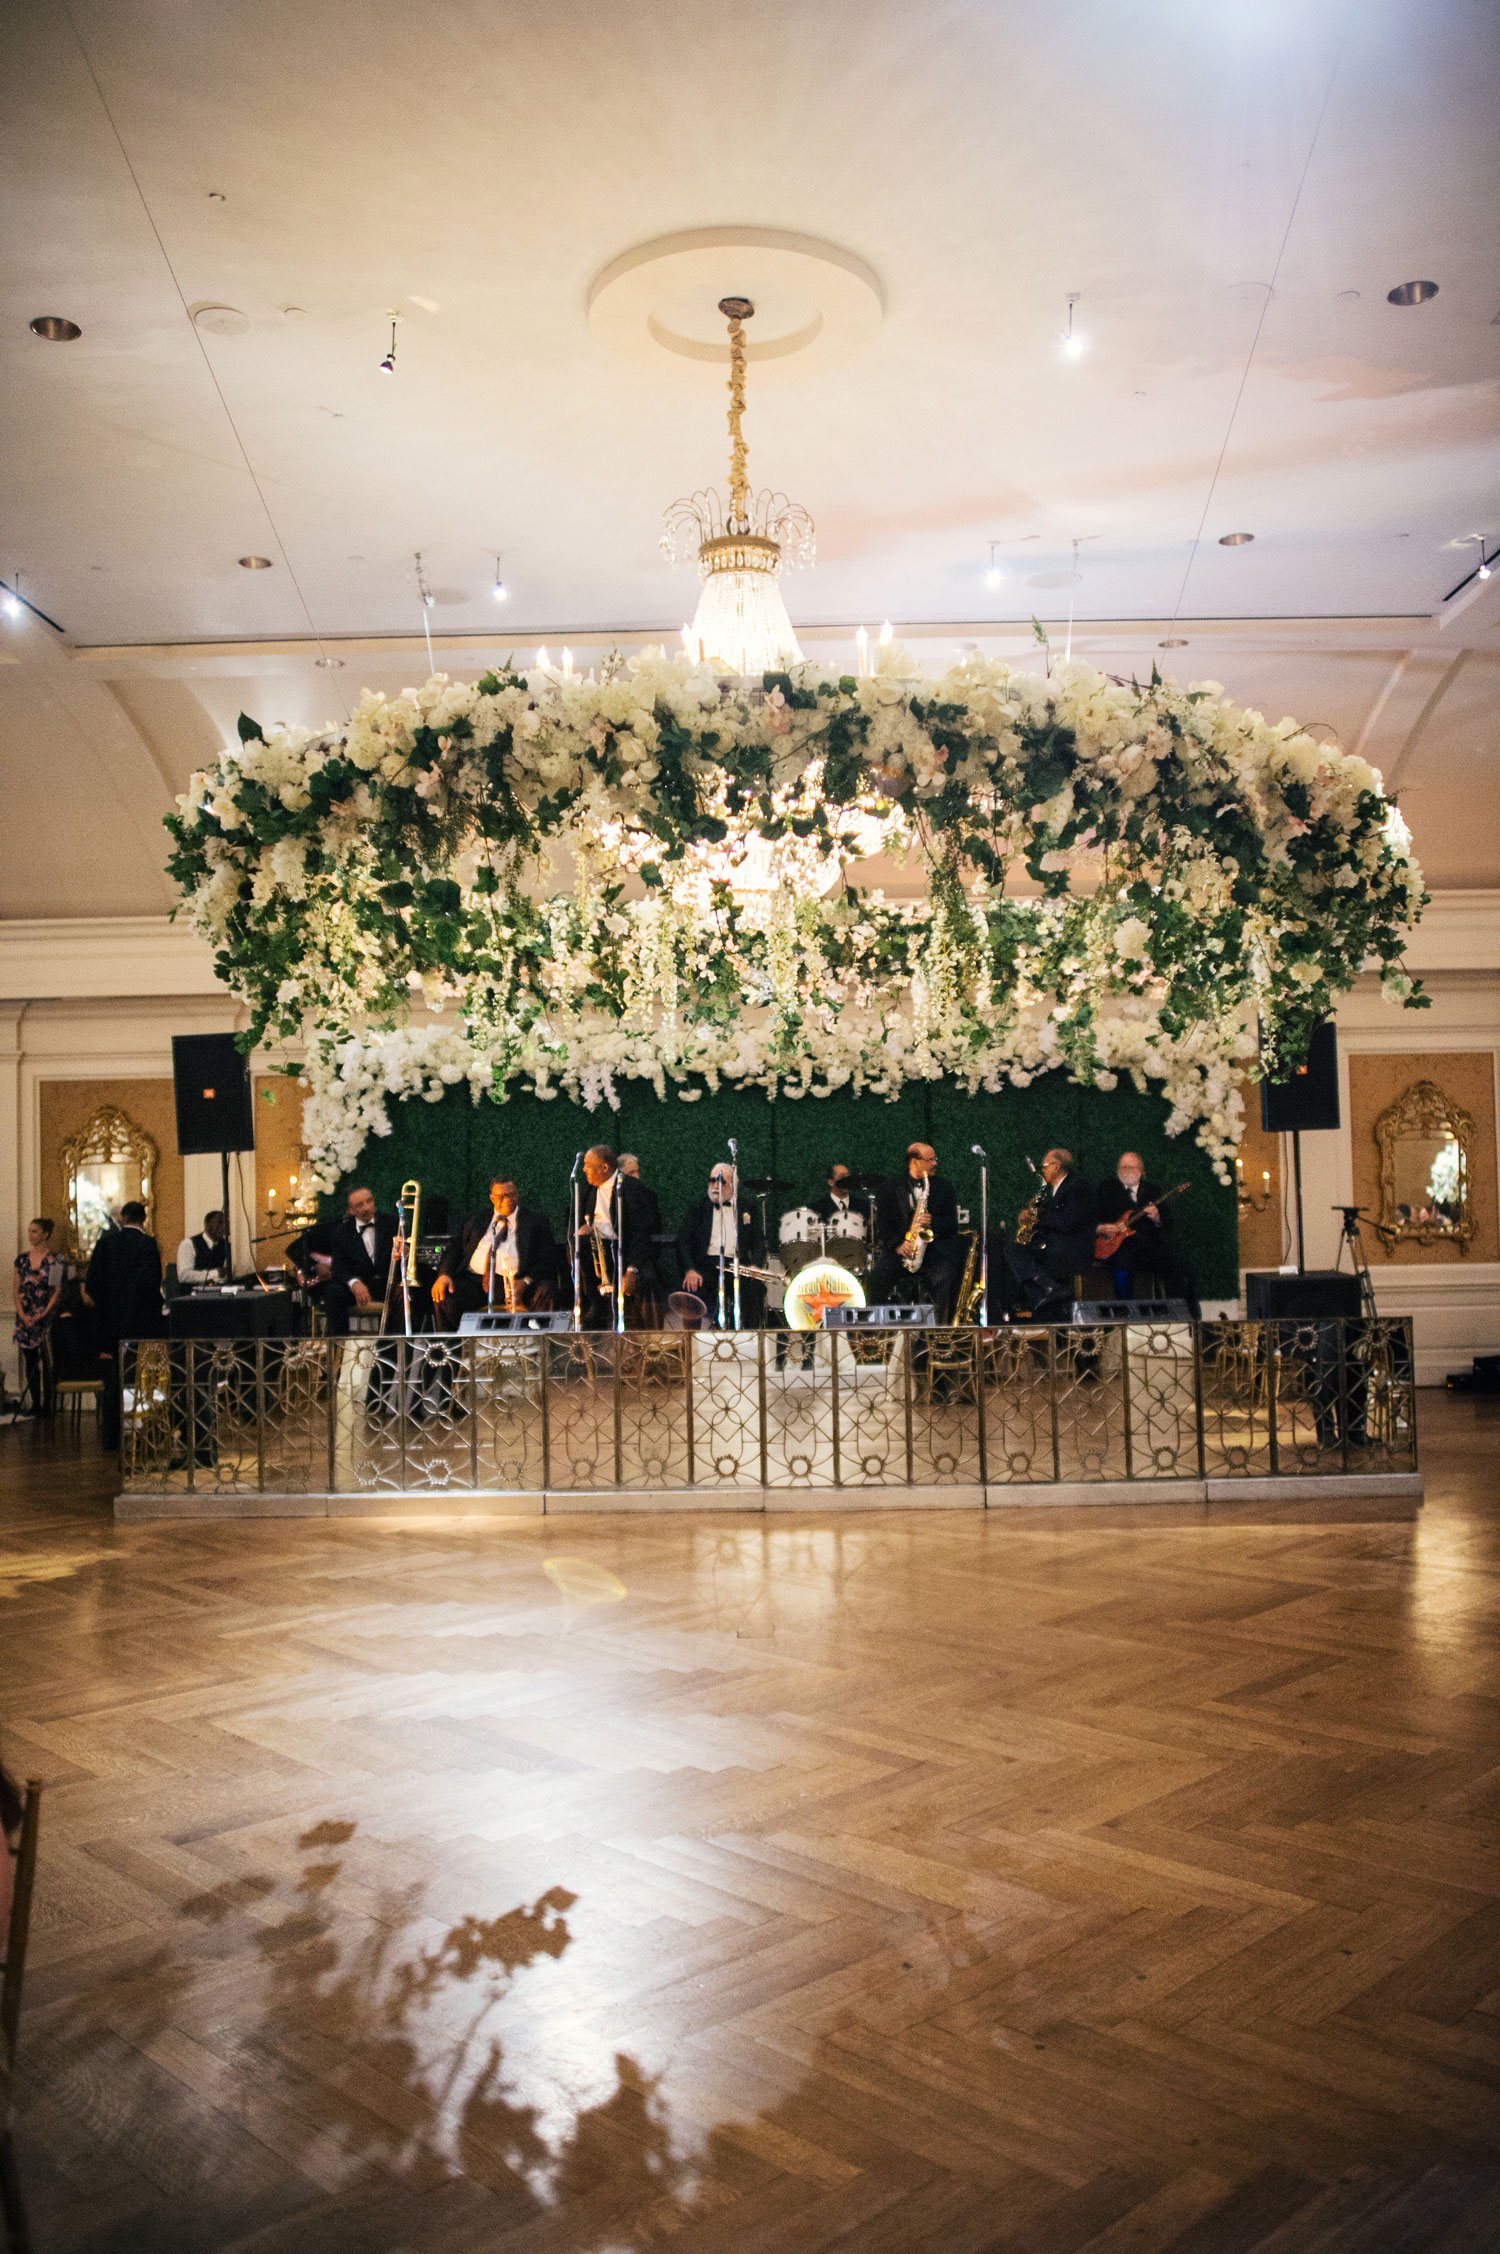 Flower and greenery wreath floral installation ceiling wedding reception over dance floor